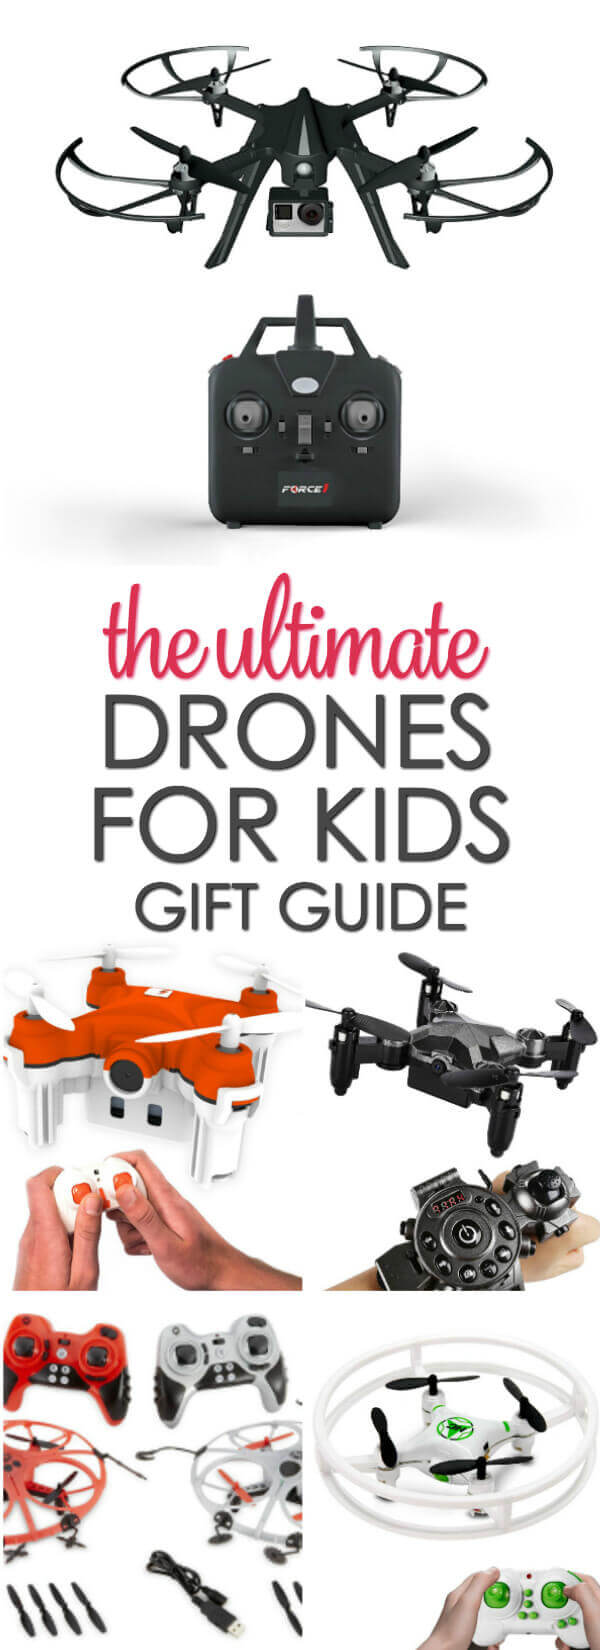 Drones are all the rage for kids of all ages. They are one of the top Christmas gifts kids love. This guide has gift ideas for drone lovers of all ages.